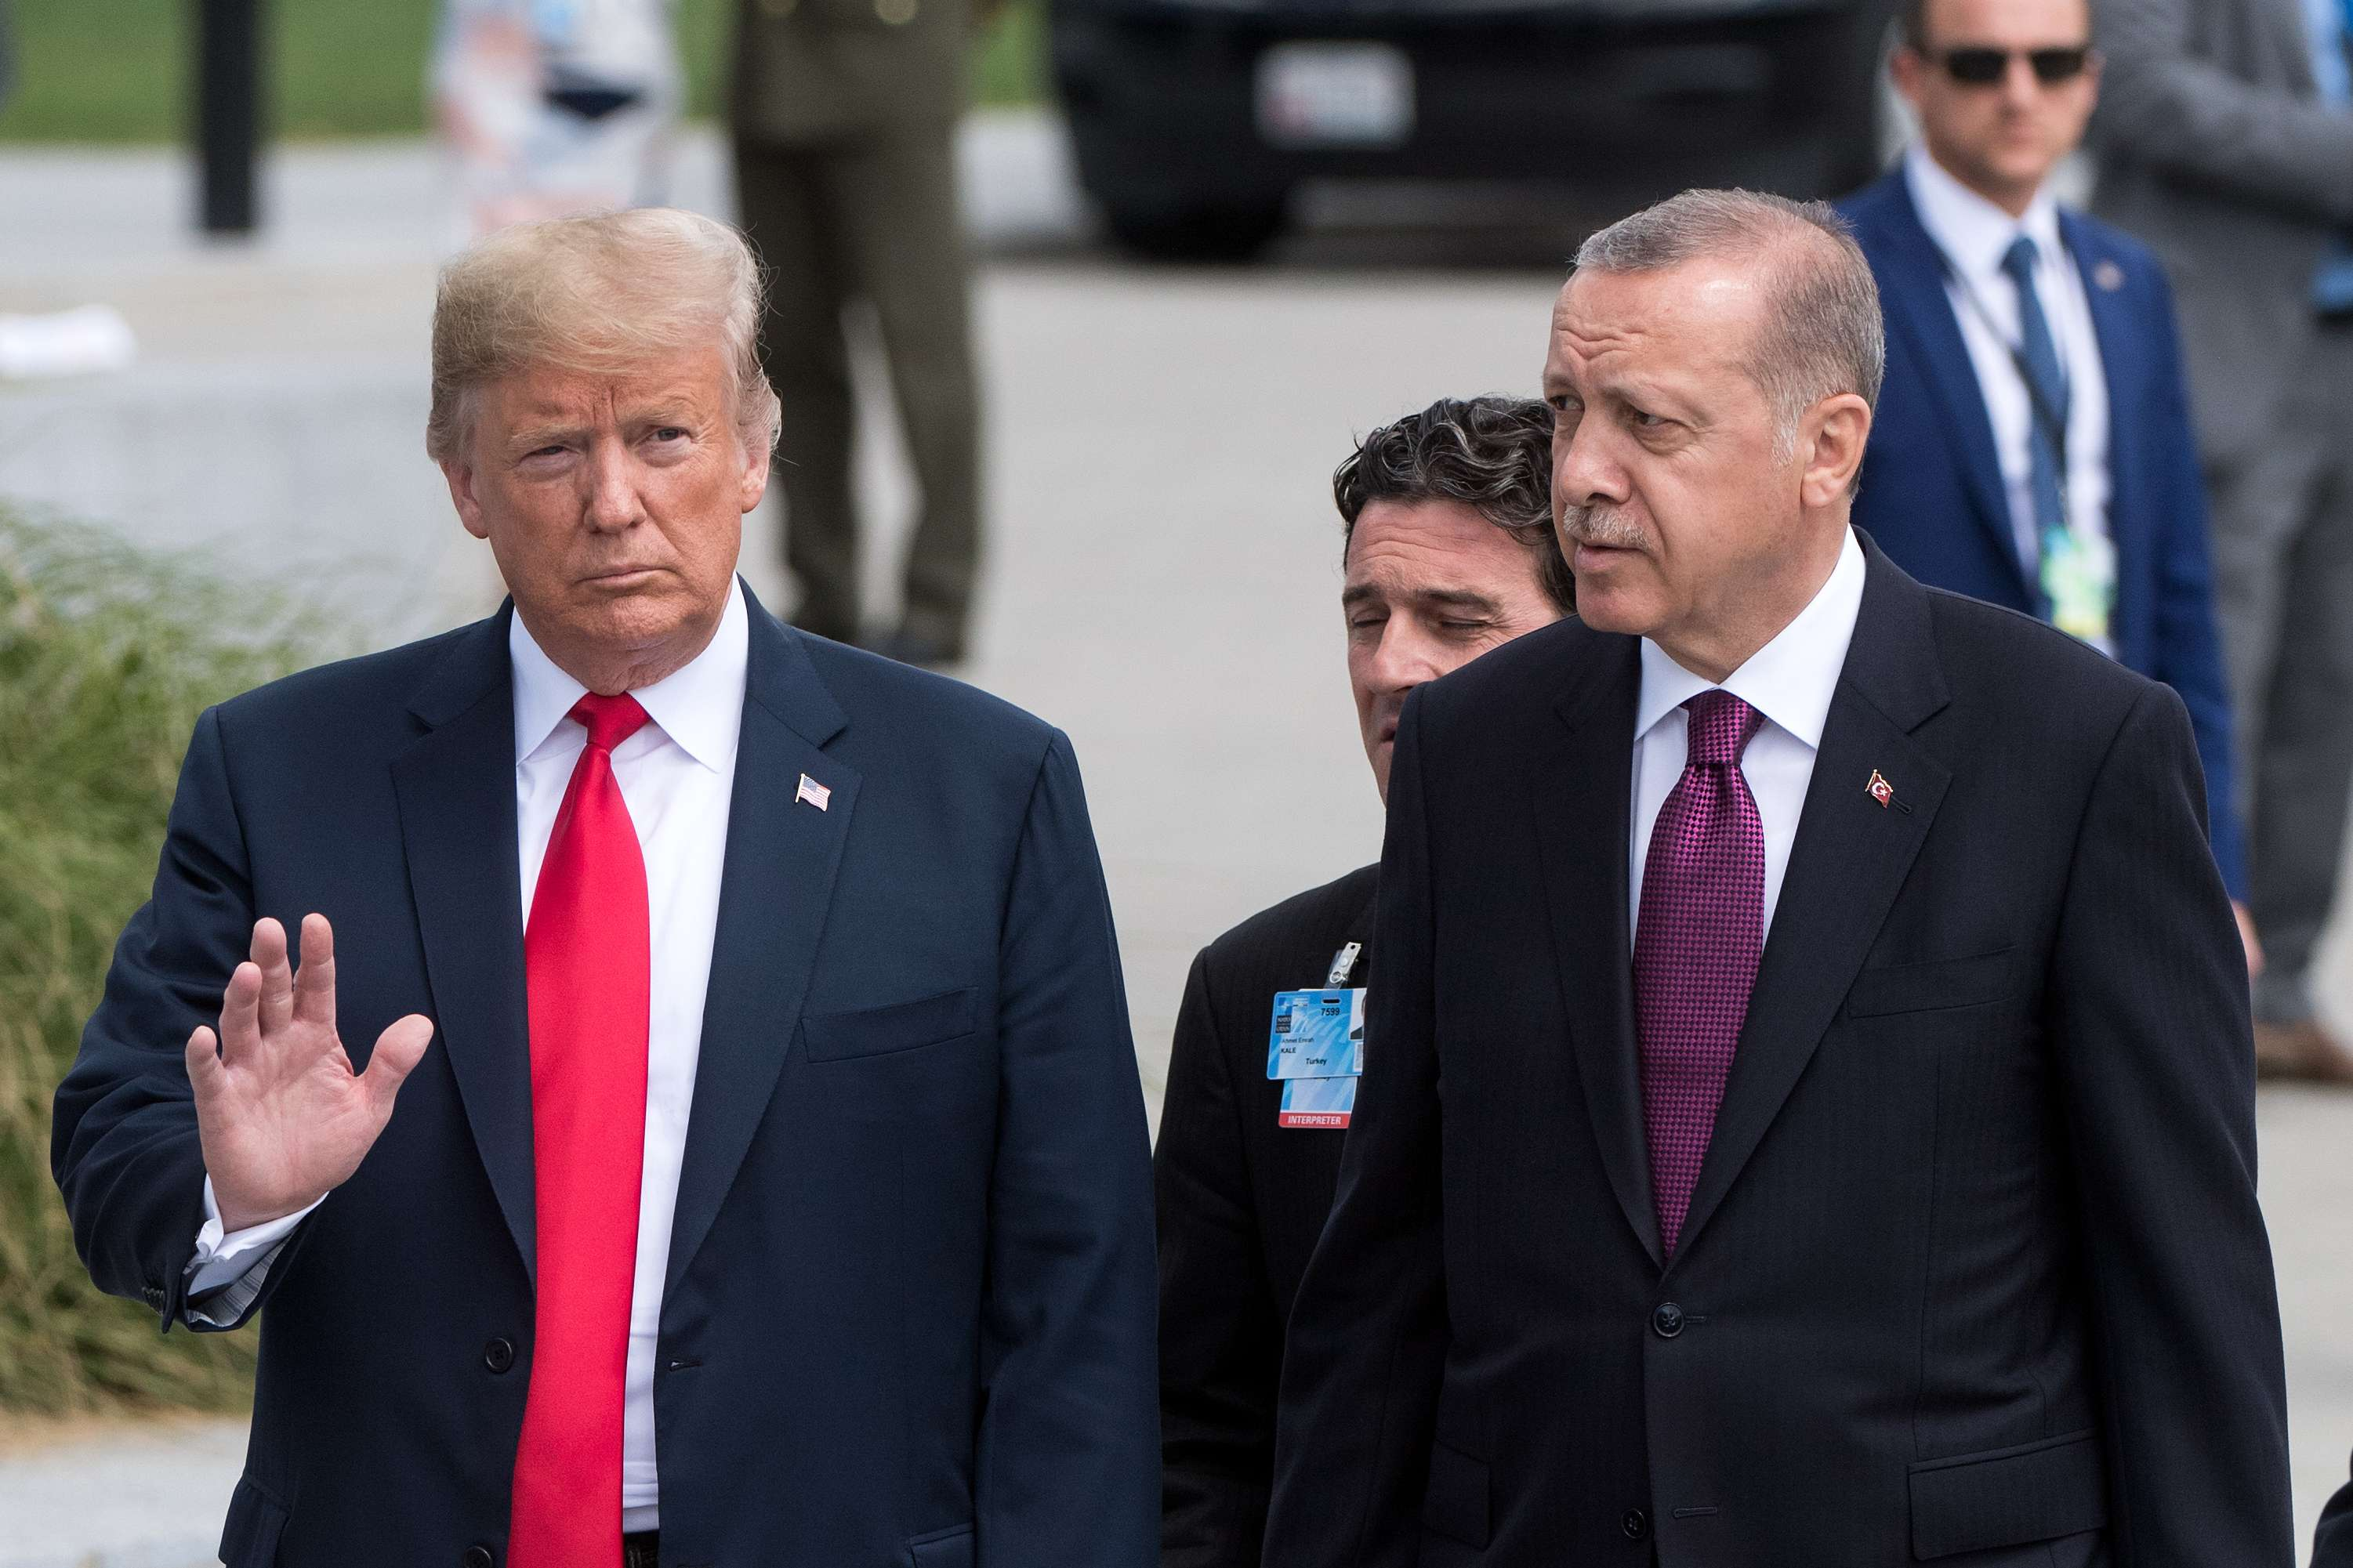 11 July 2018, Belgium, Brussels: US President Donald Trump (L) and Turkish President Recep Tayyip Erdogan arrive at a photocall during the NATO Summit. (DPA)